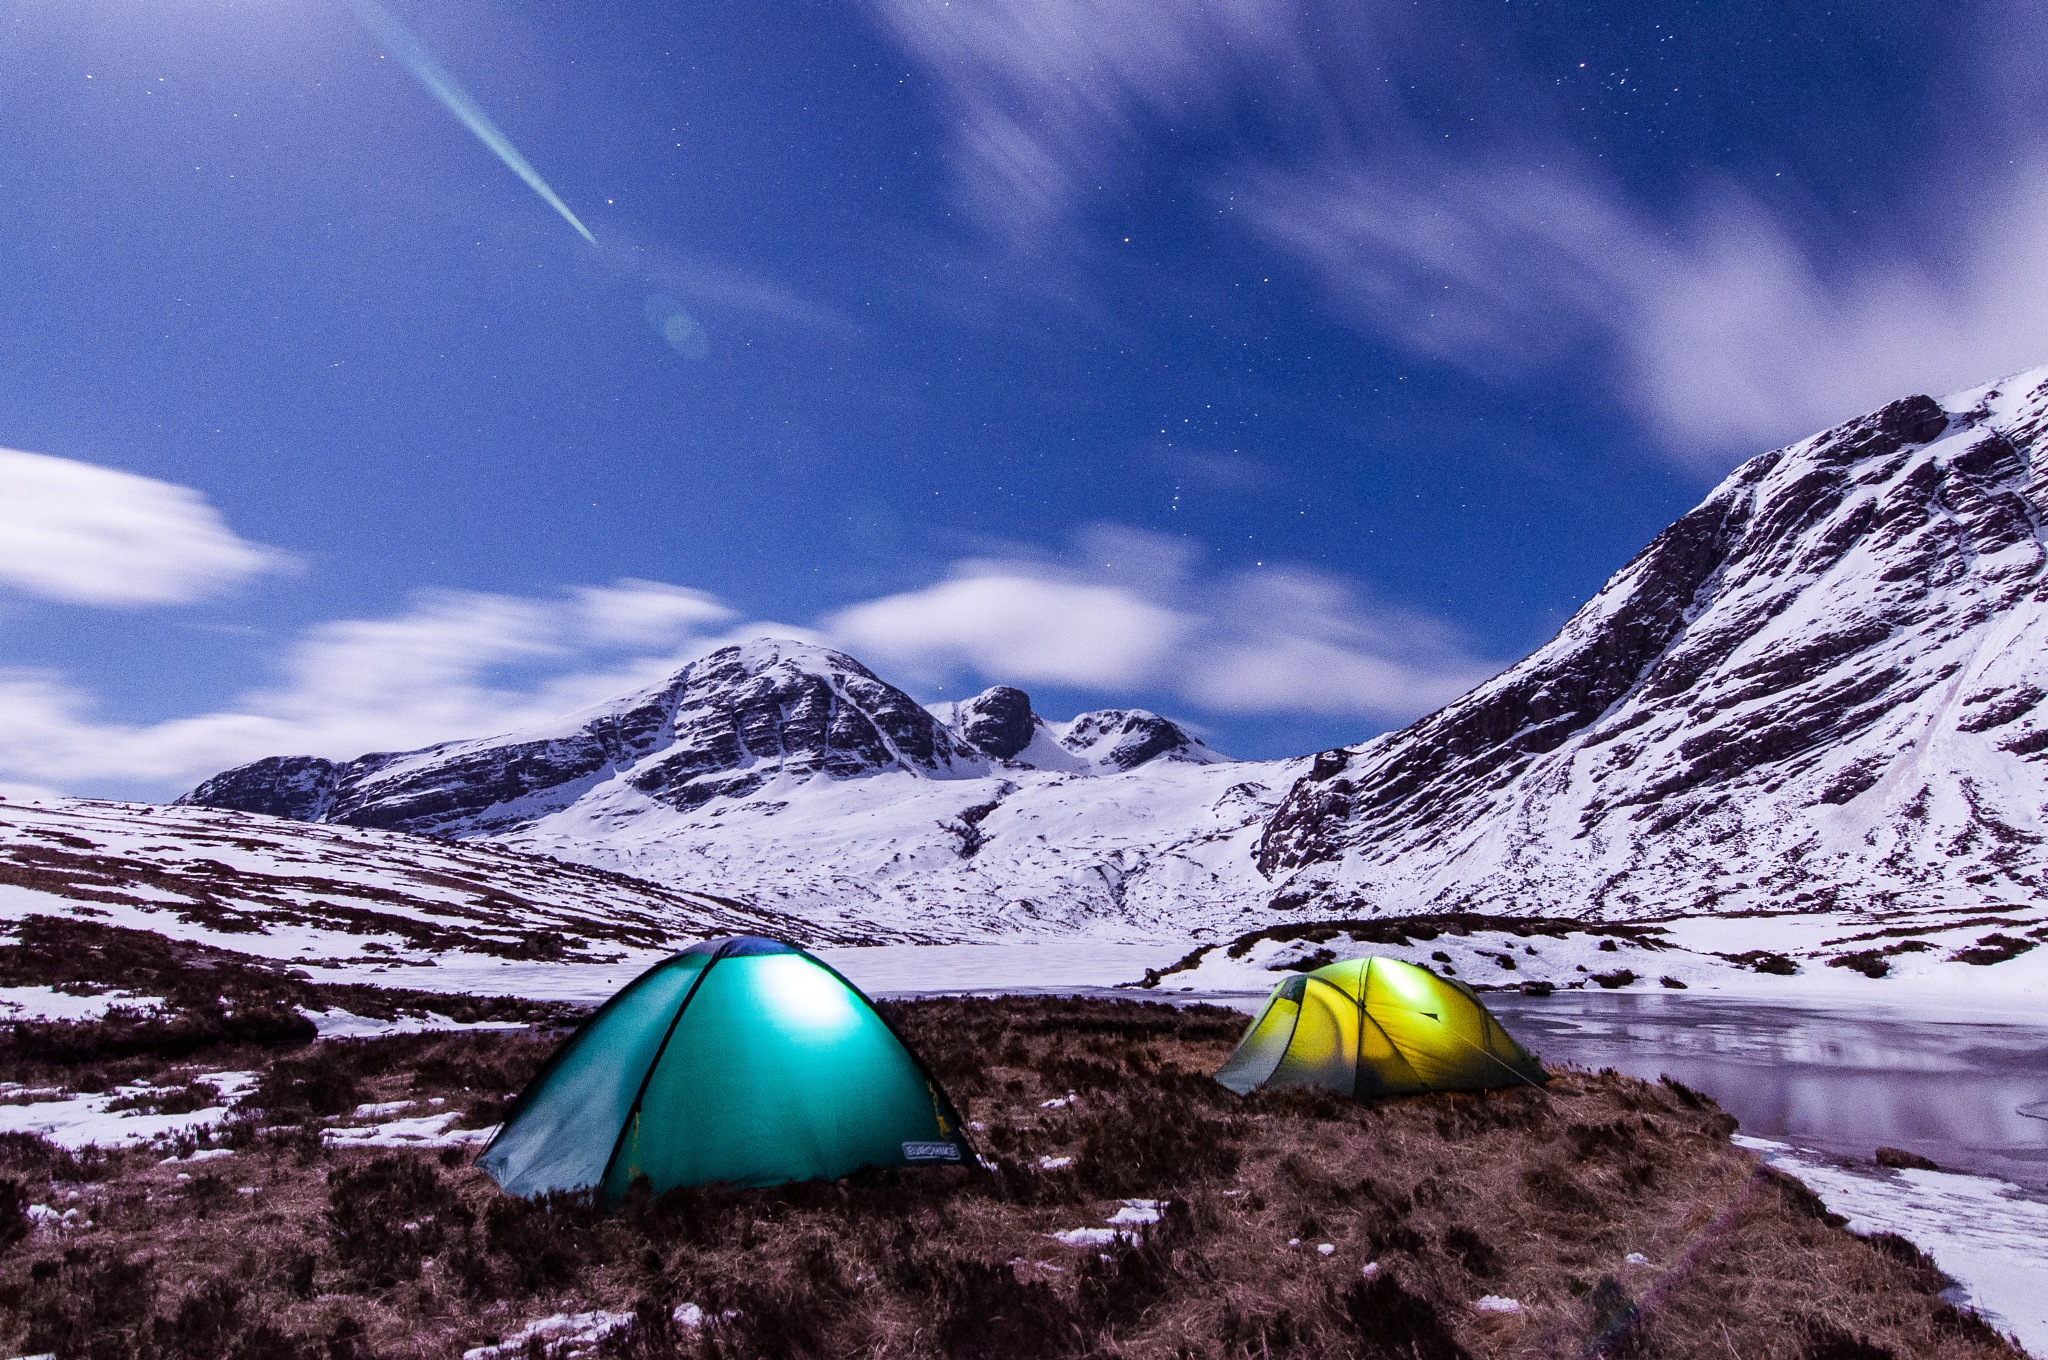 Mountain Camp by Tom Arnold